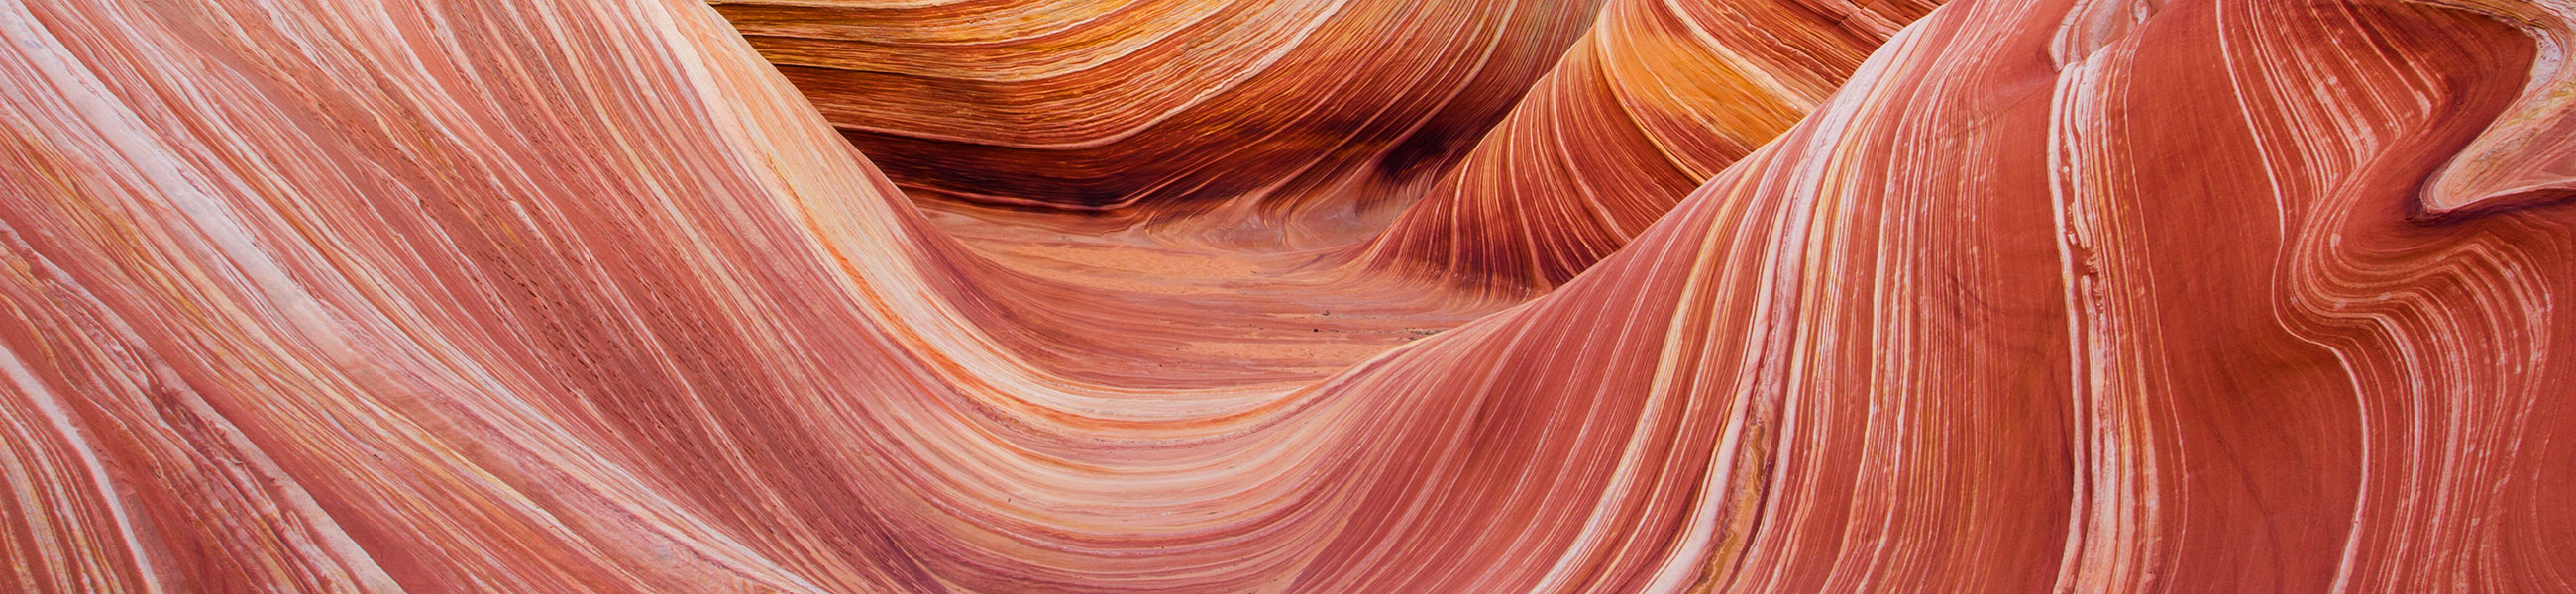 The Wave dans North Coyote Buttes